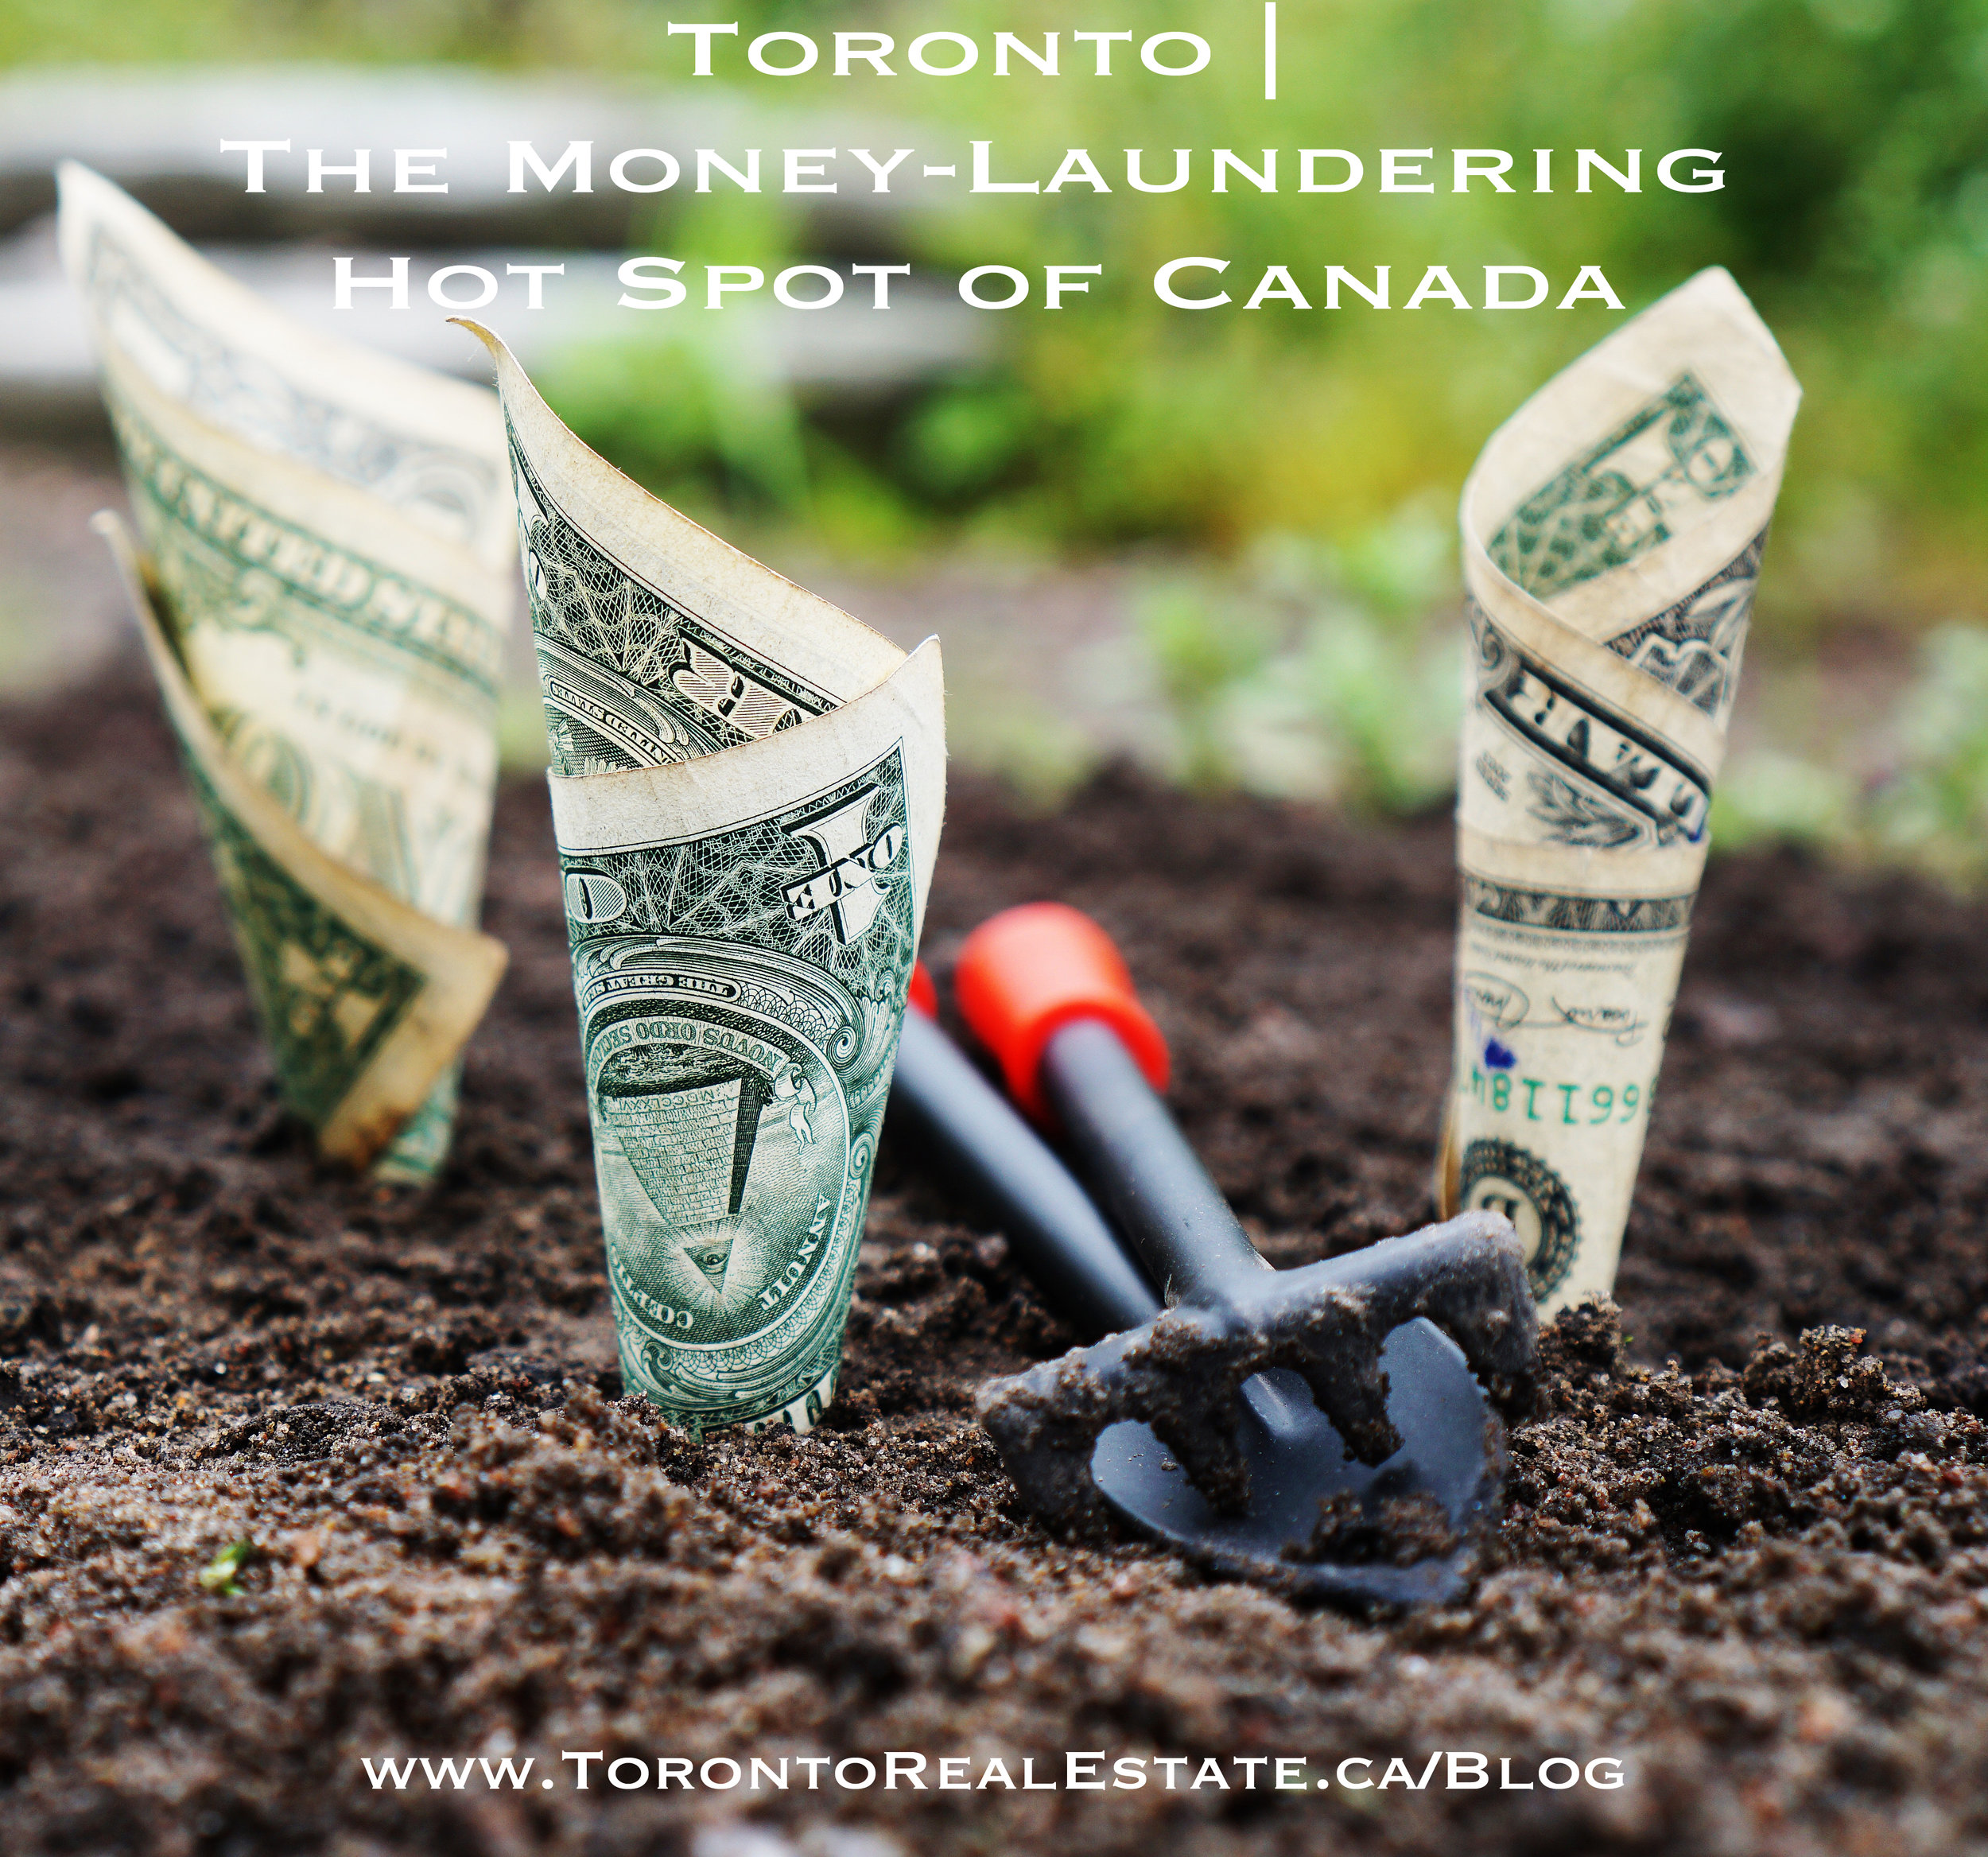 Toronto - The Money-Laundering Hot Spot of Canada